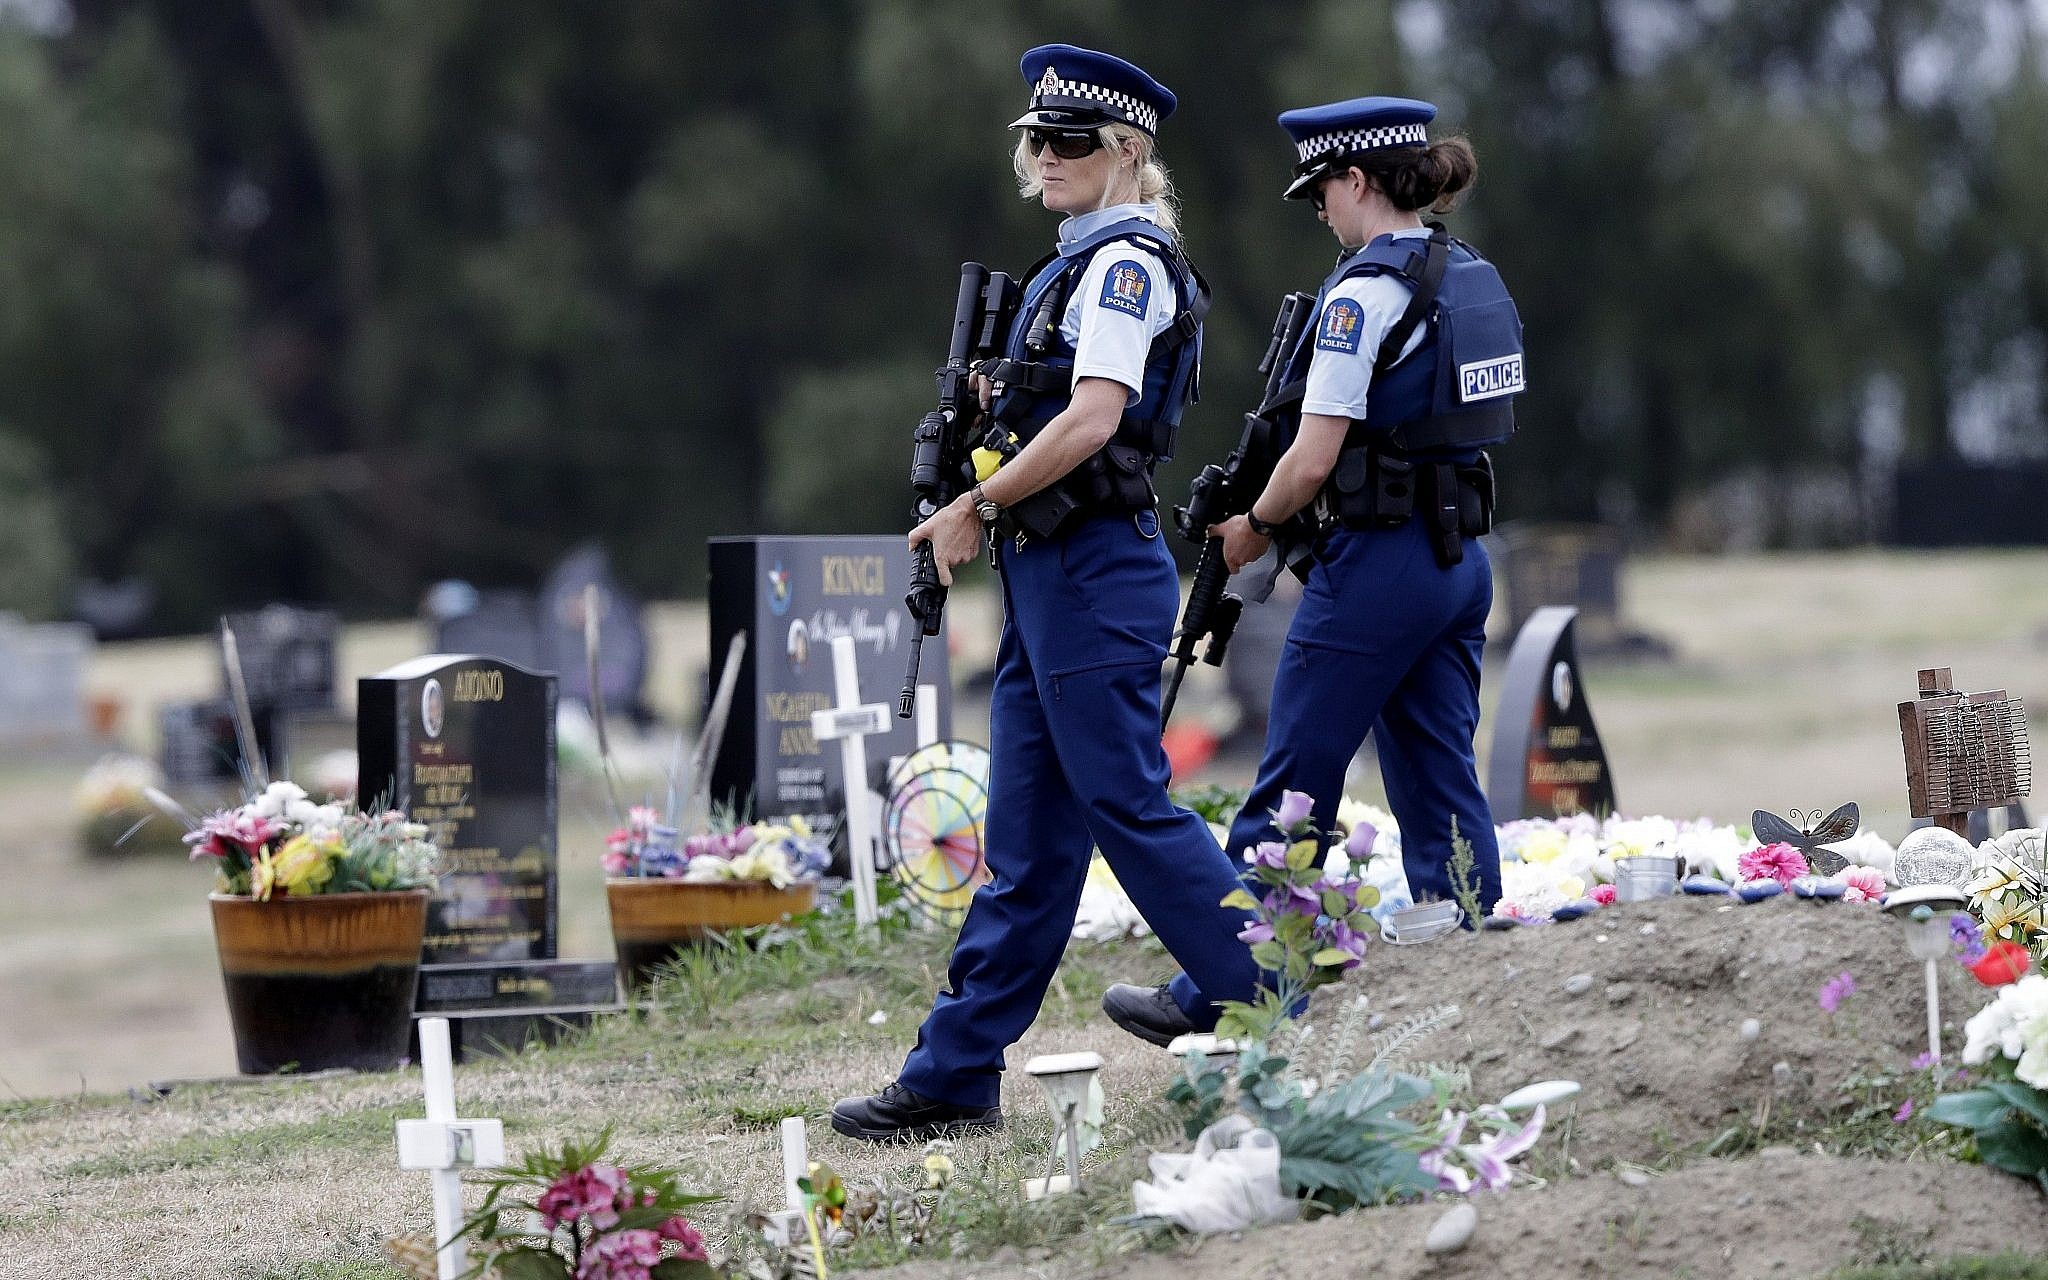 New Zealand shooter is 'lucid' and understands charges, lawyer says